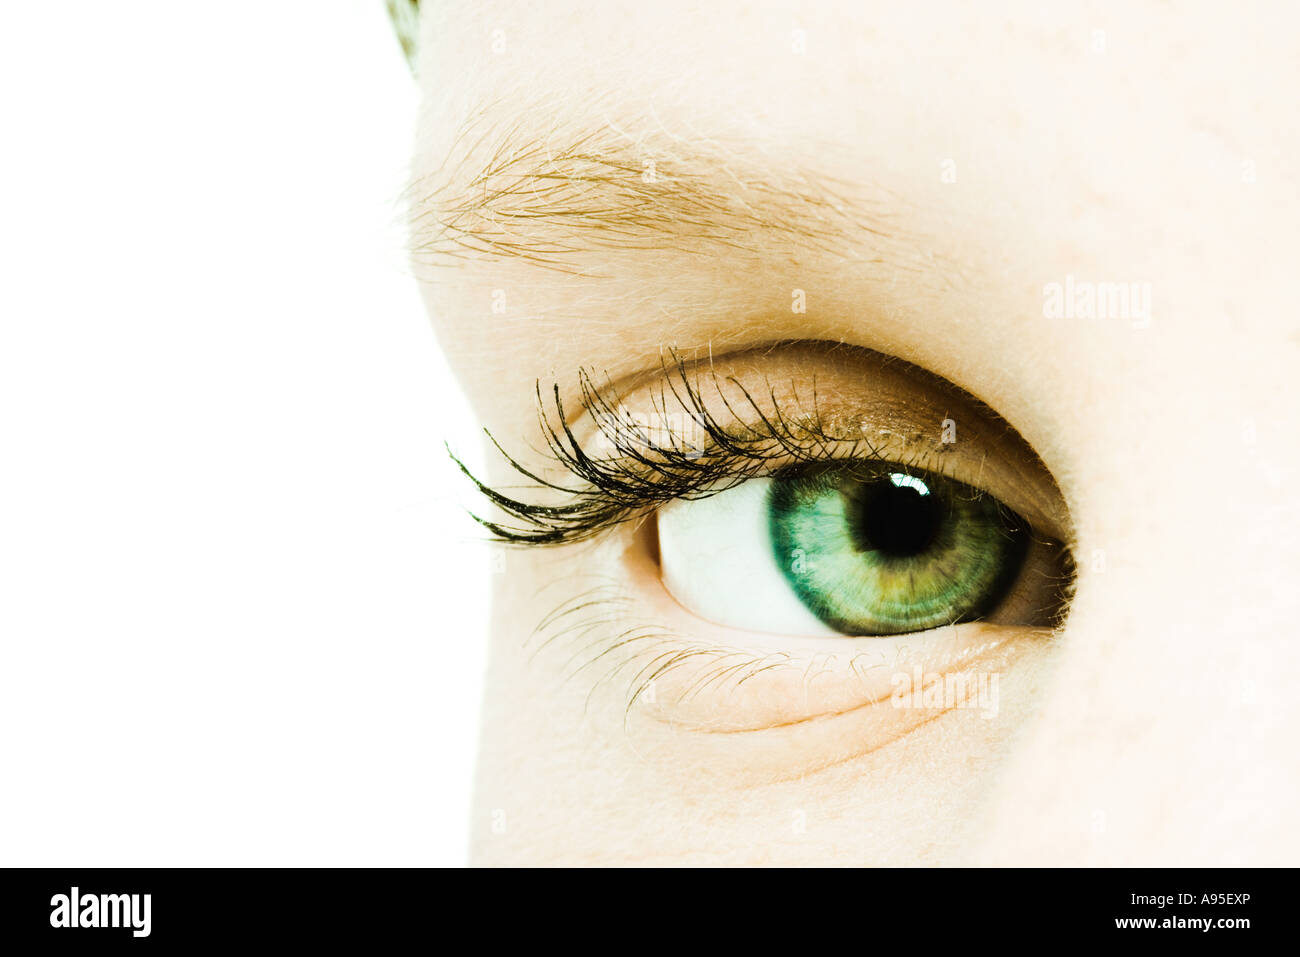 Teenage girl's eye, extreme close-up - Stock Image